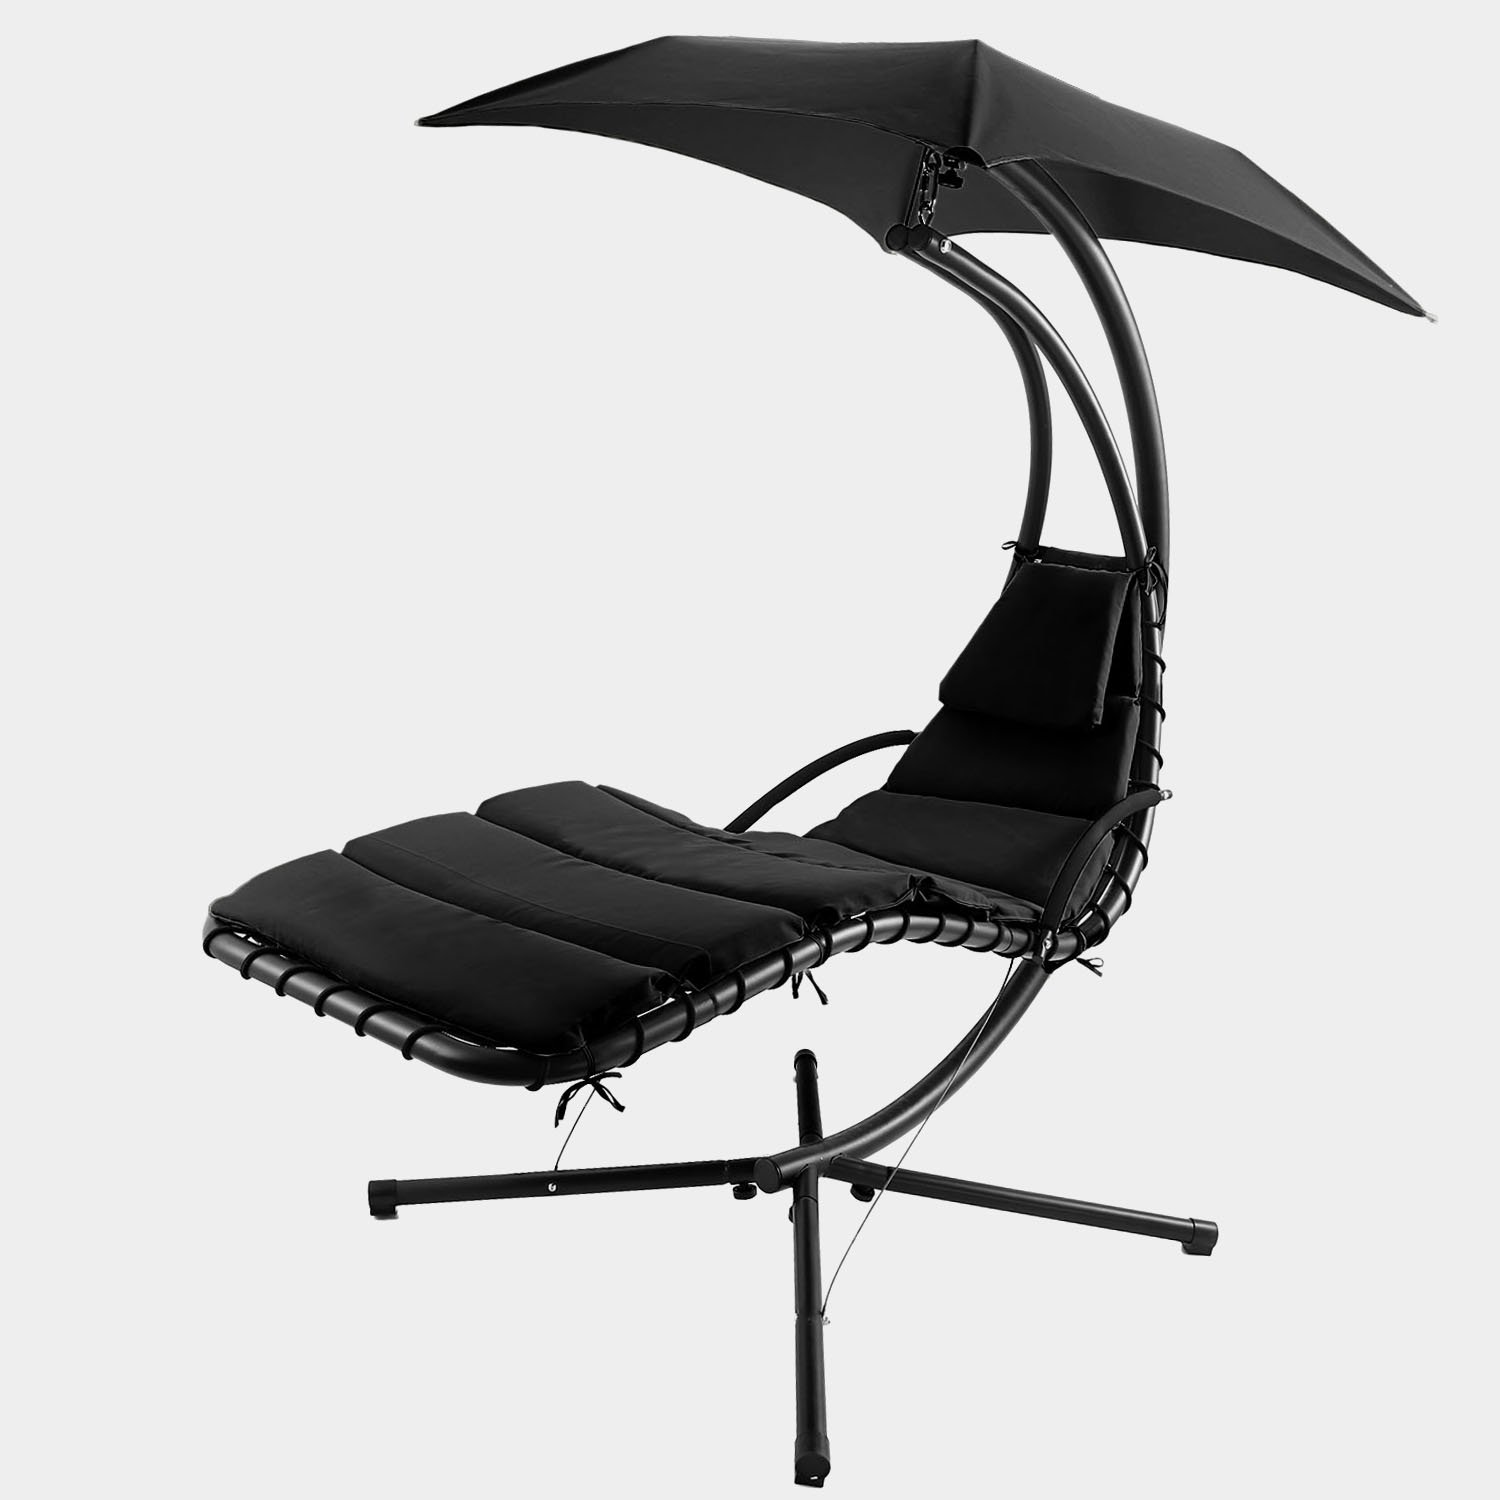 Vansop Hanging Chaise Lounger Chair Arc Stand Air Porch Swing Hammock with Canopy, 350lbs Max Weight Capacity (US Stock) (Black)